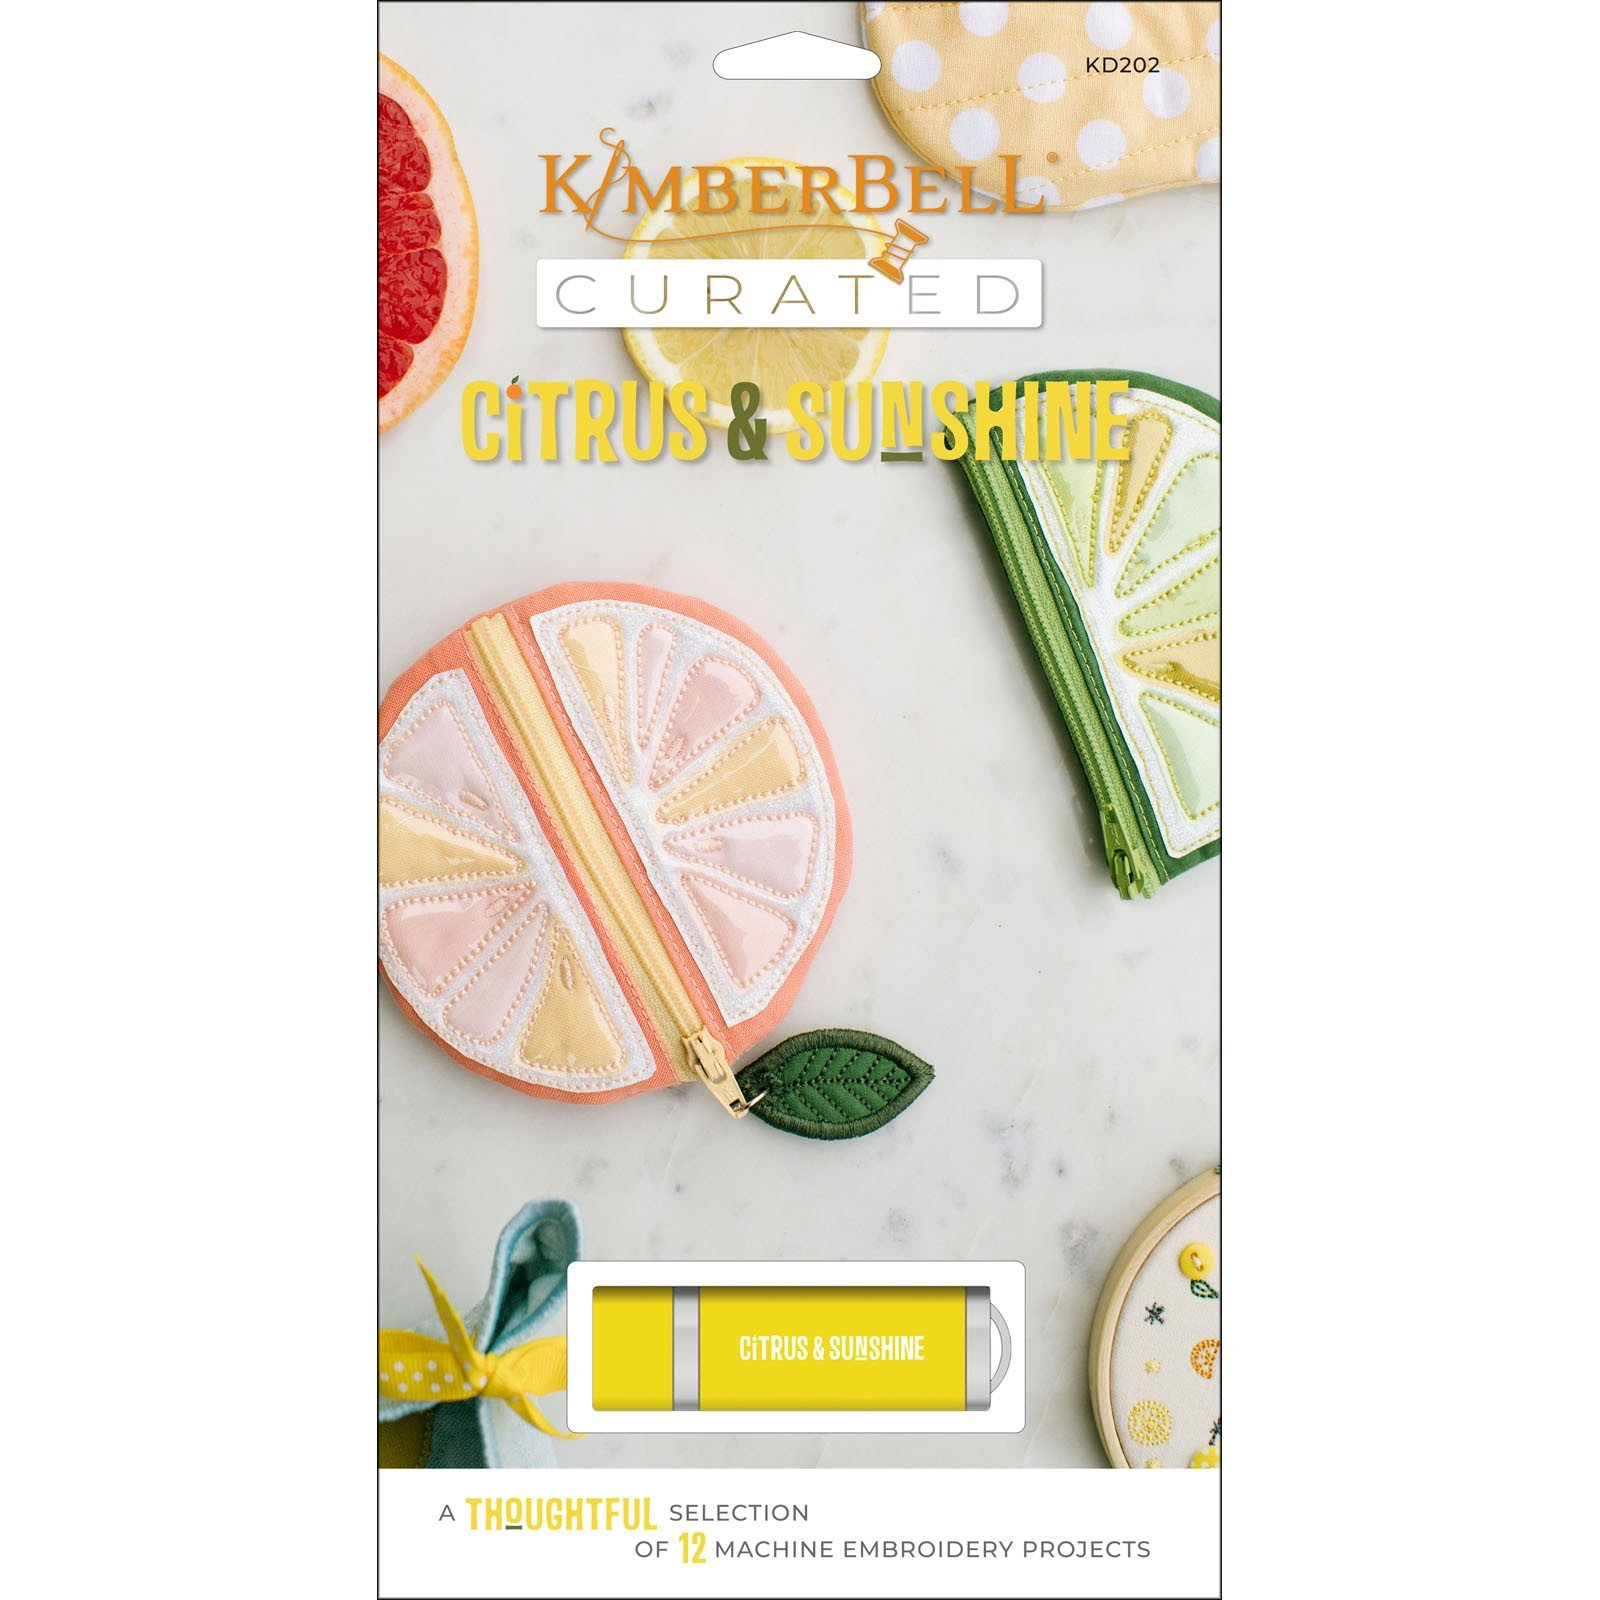 Citrus & Sunshine Kimberbell Curated Embroidery USB